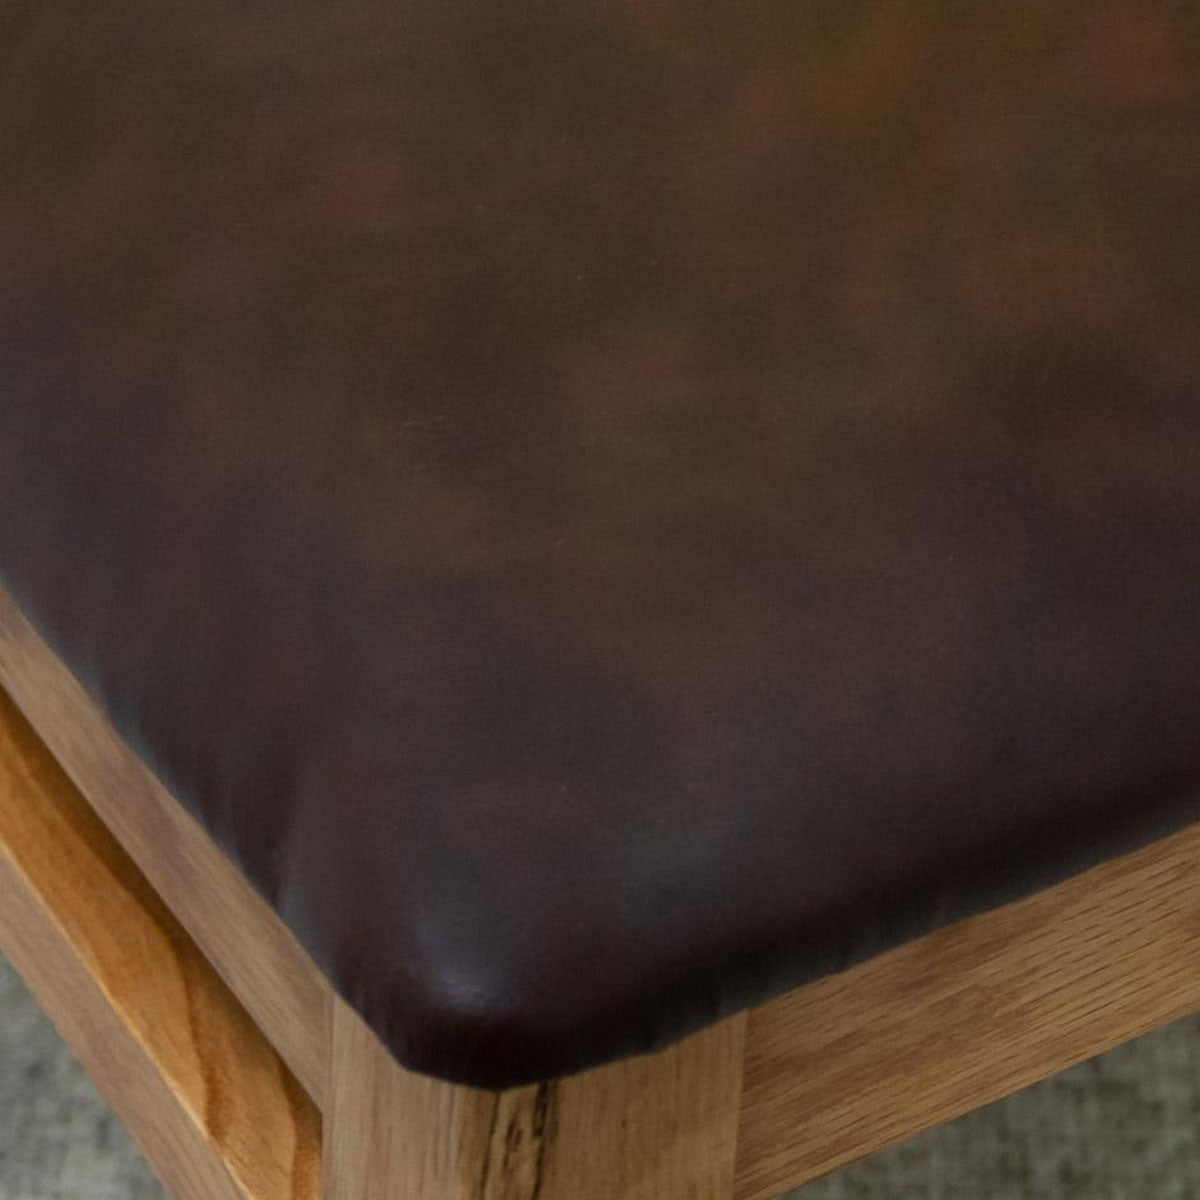 Stockholm Solid Oak Dining Chair With Leather Seat